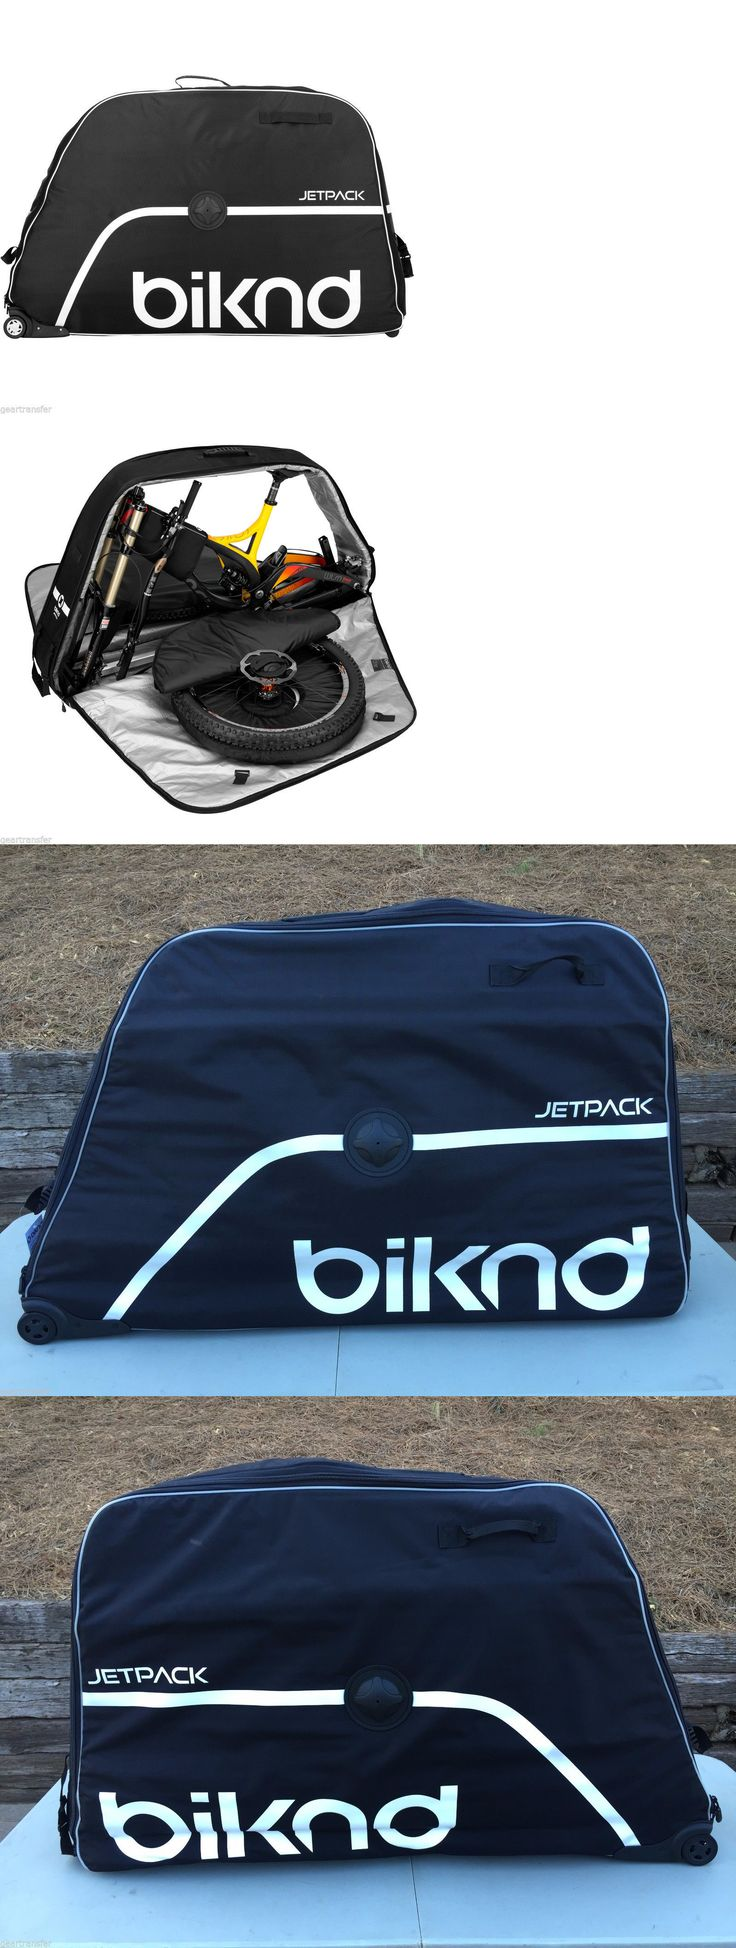 Bicycle Transport Cases and Bags 177835: Biknd Jetpack Bike Travel Case For Air Travel Bicycle Protection - Black - New -> BUY IT NOW ONLY: $399.99 on eBay!